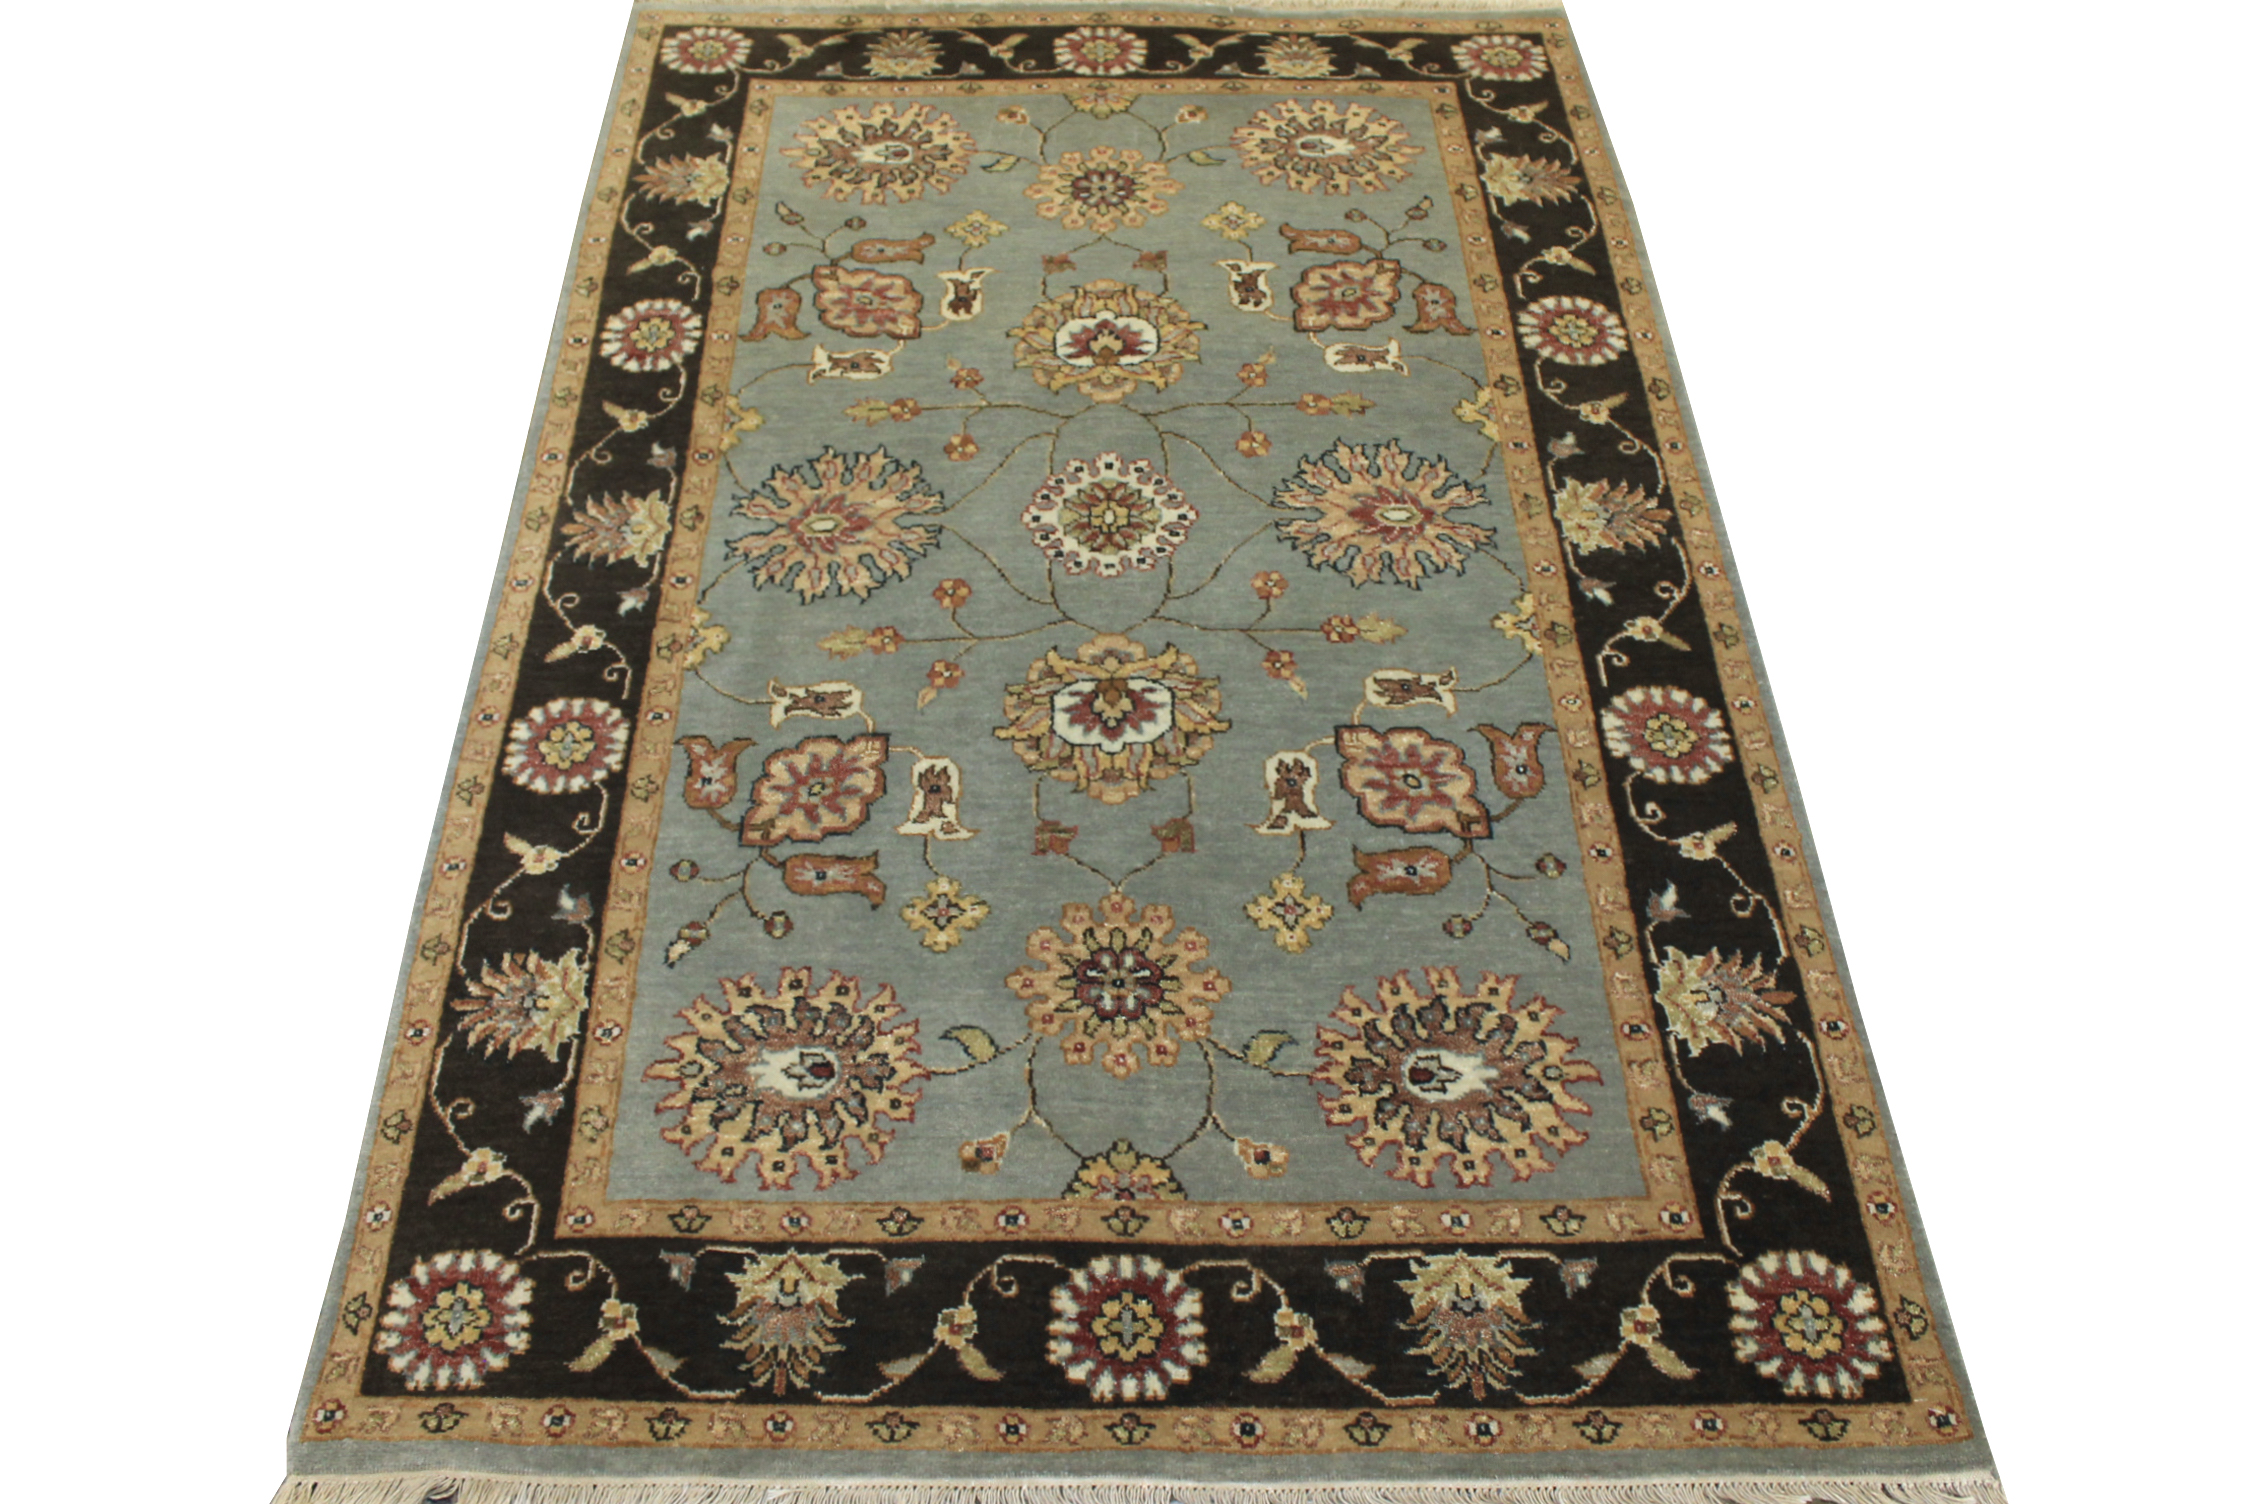 4x6 Traditional Hand Knotted Wool Area Rug - MR12241